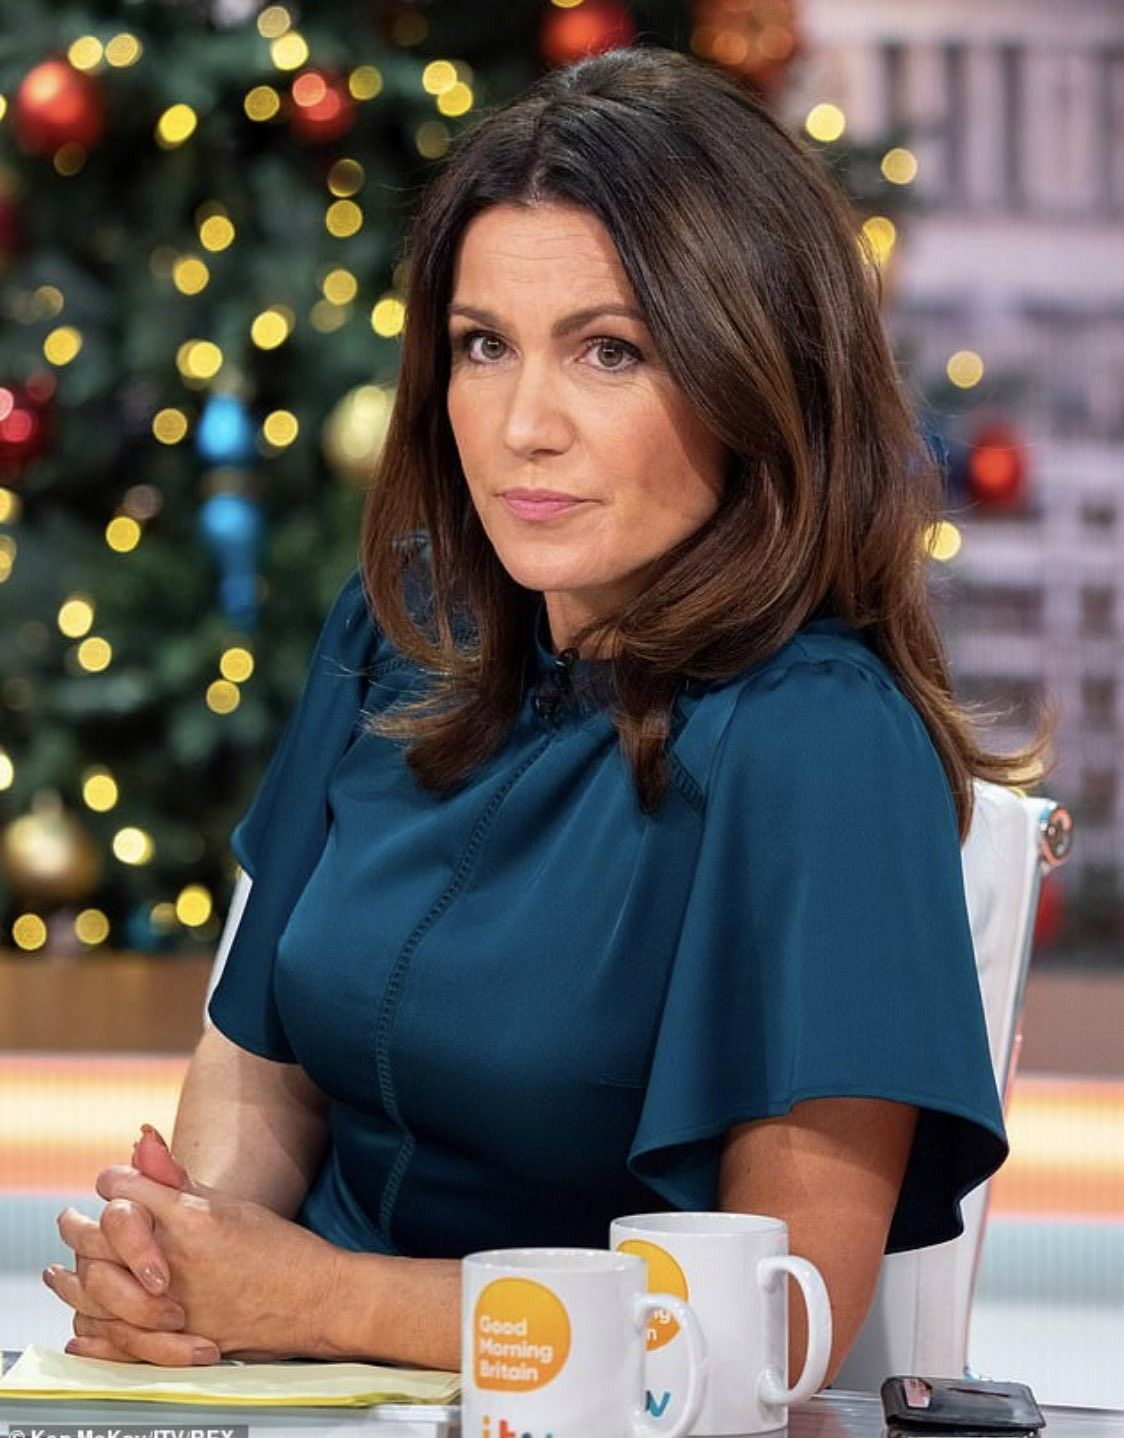 Forum on this topic: Full video india love westbrooks sex tape nude leaked, susanna-reid-in-her-pyjamas-out-in/